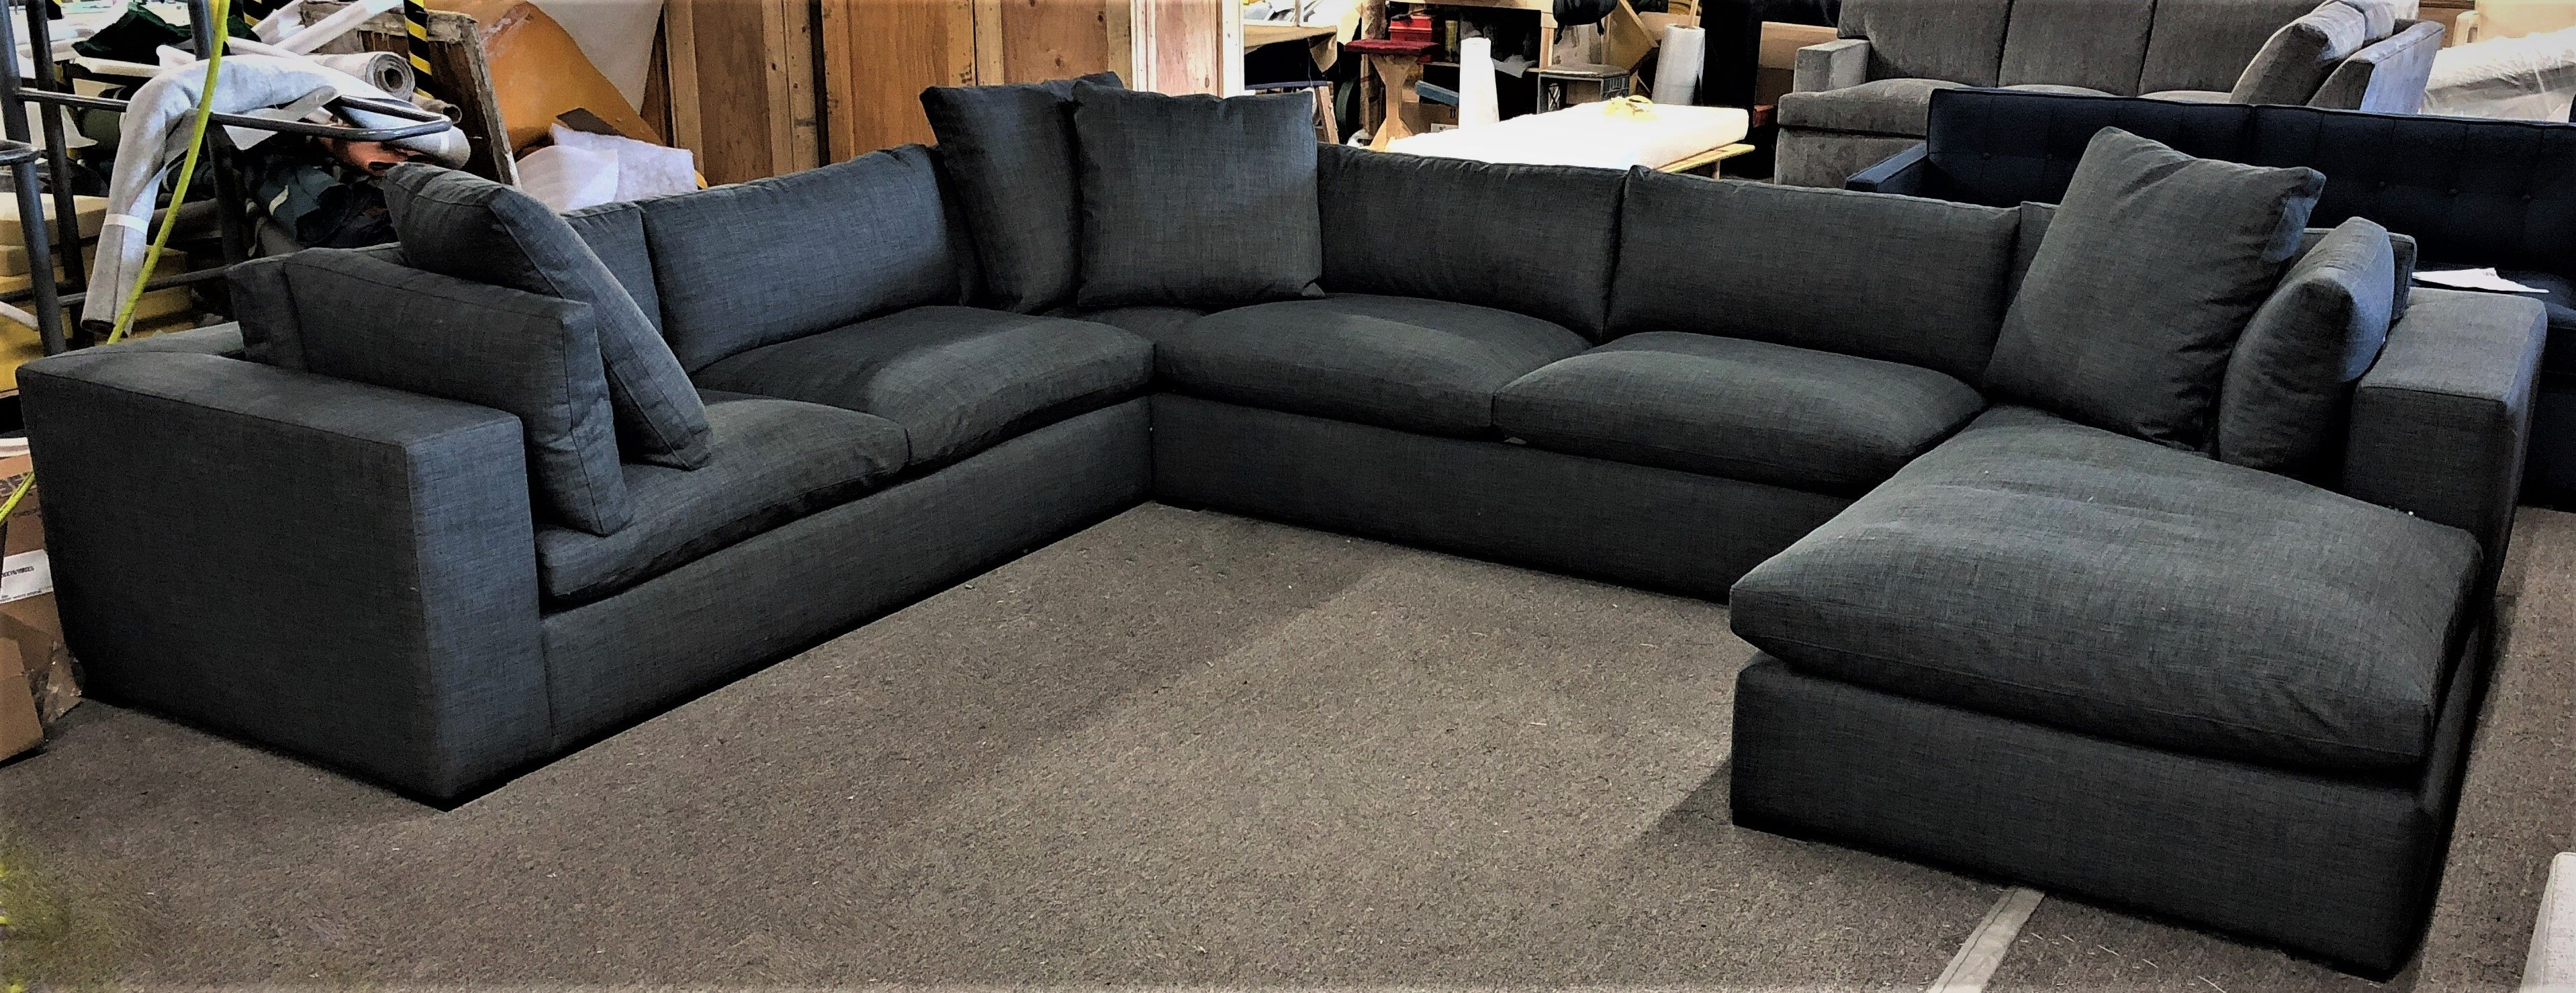 CLAUDIA STYLE ! Custom dream sofa or dream sectional ...